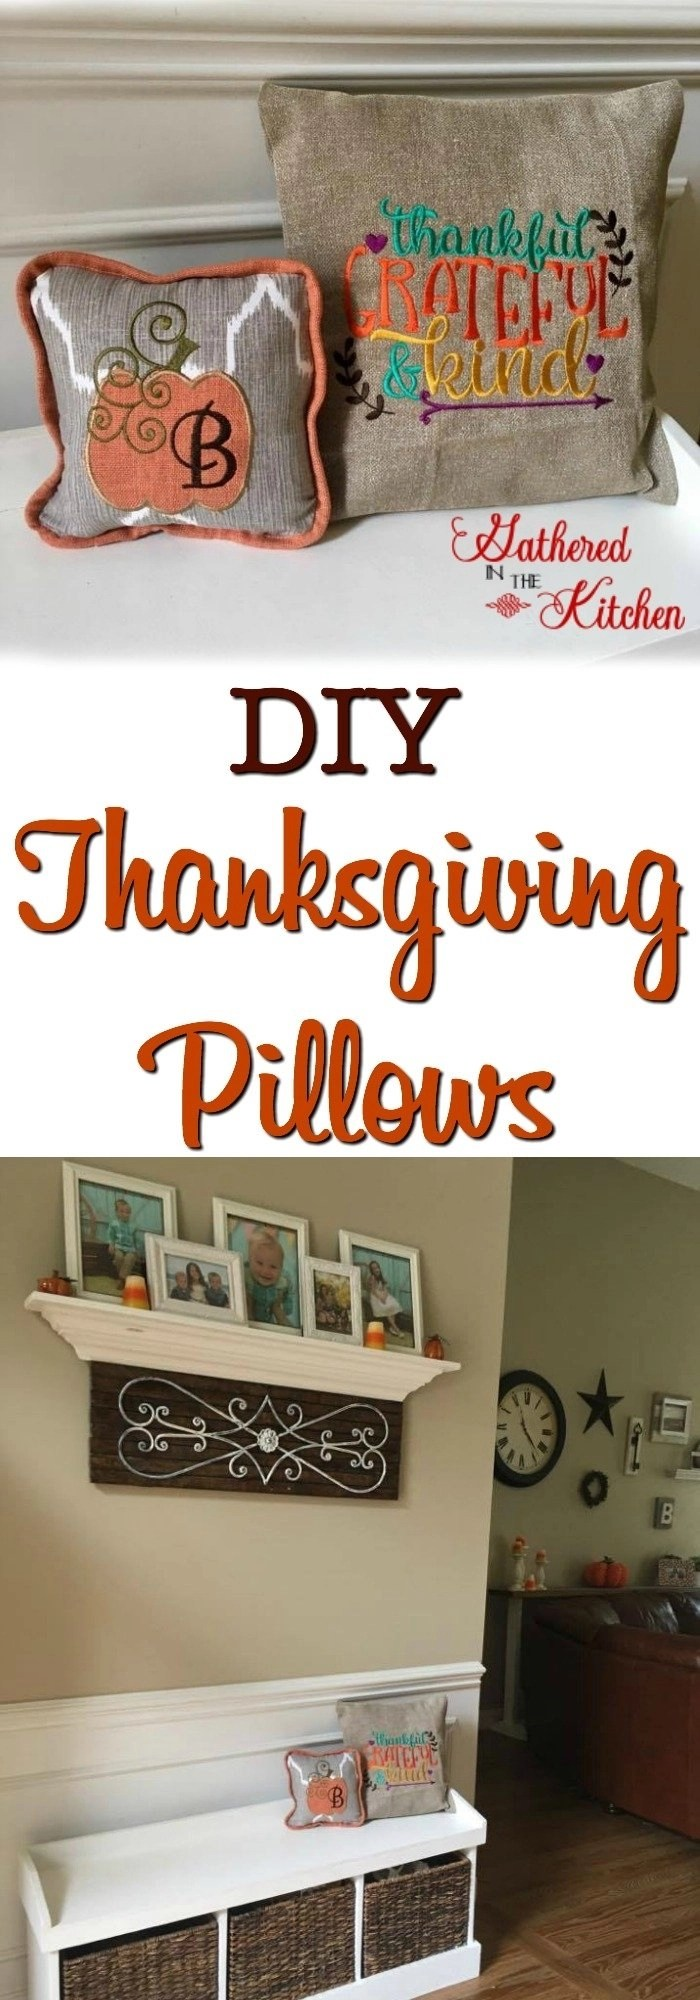 thanksgiving-pillow-17-2